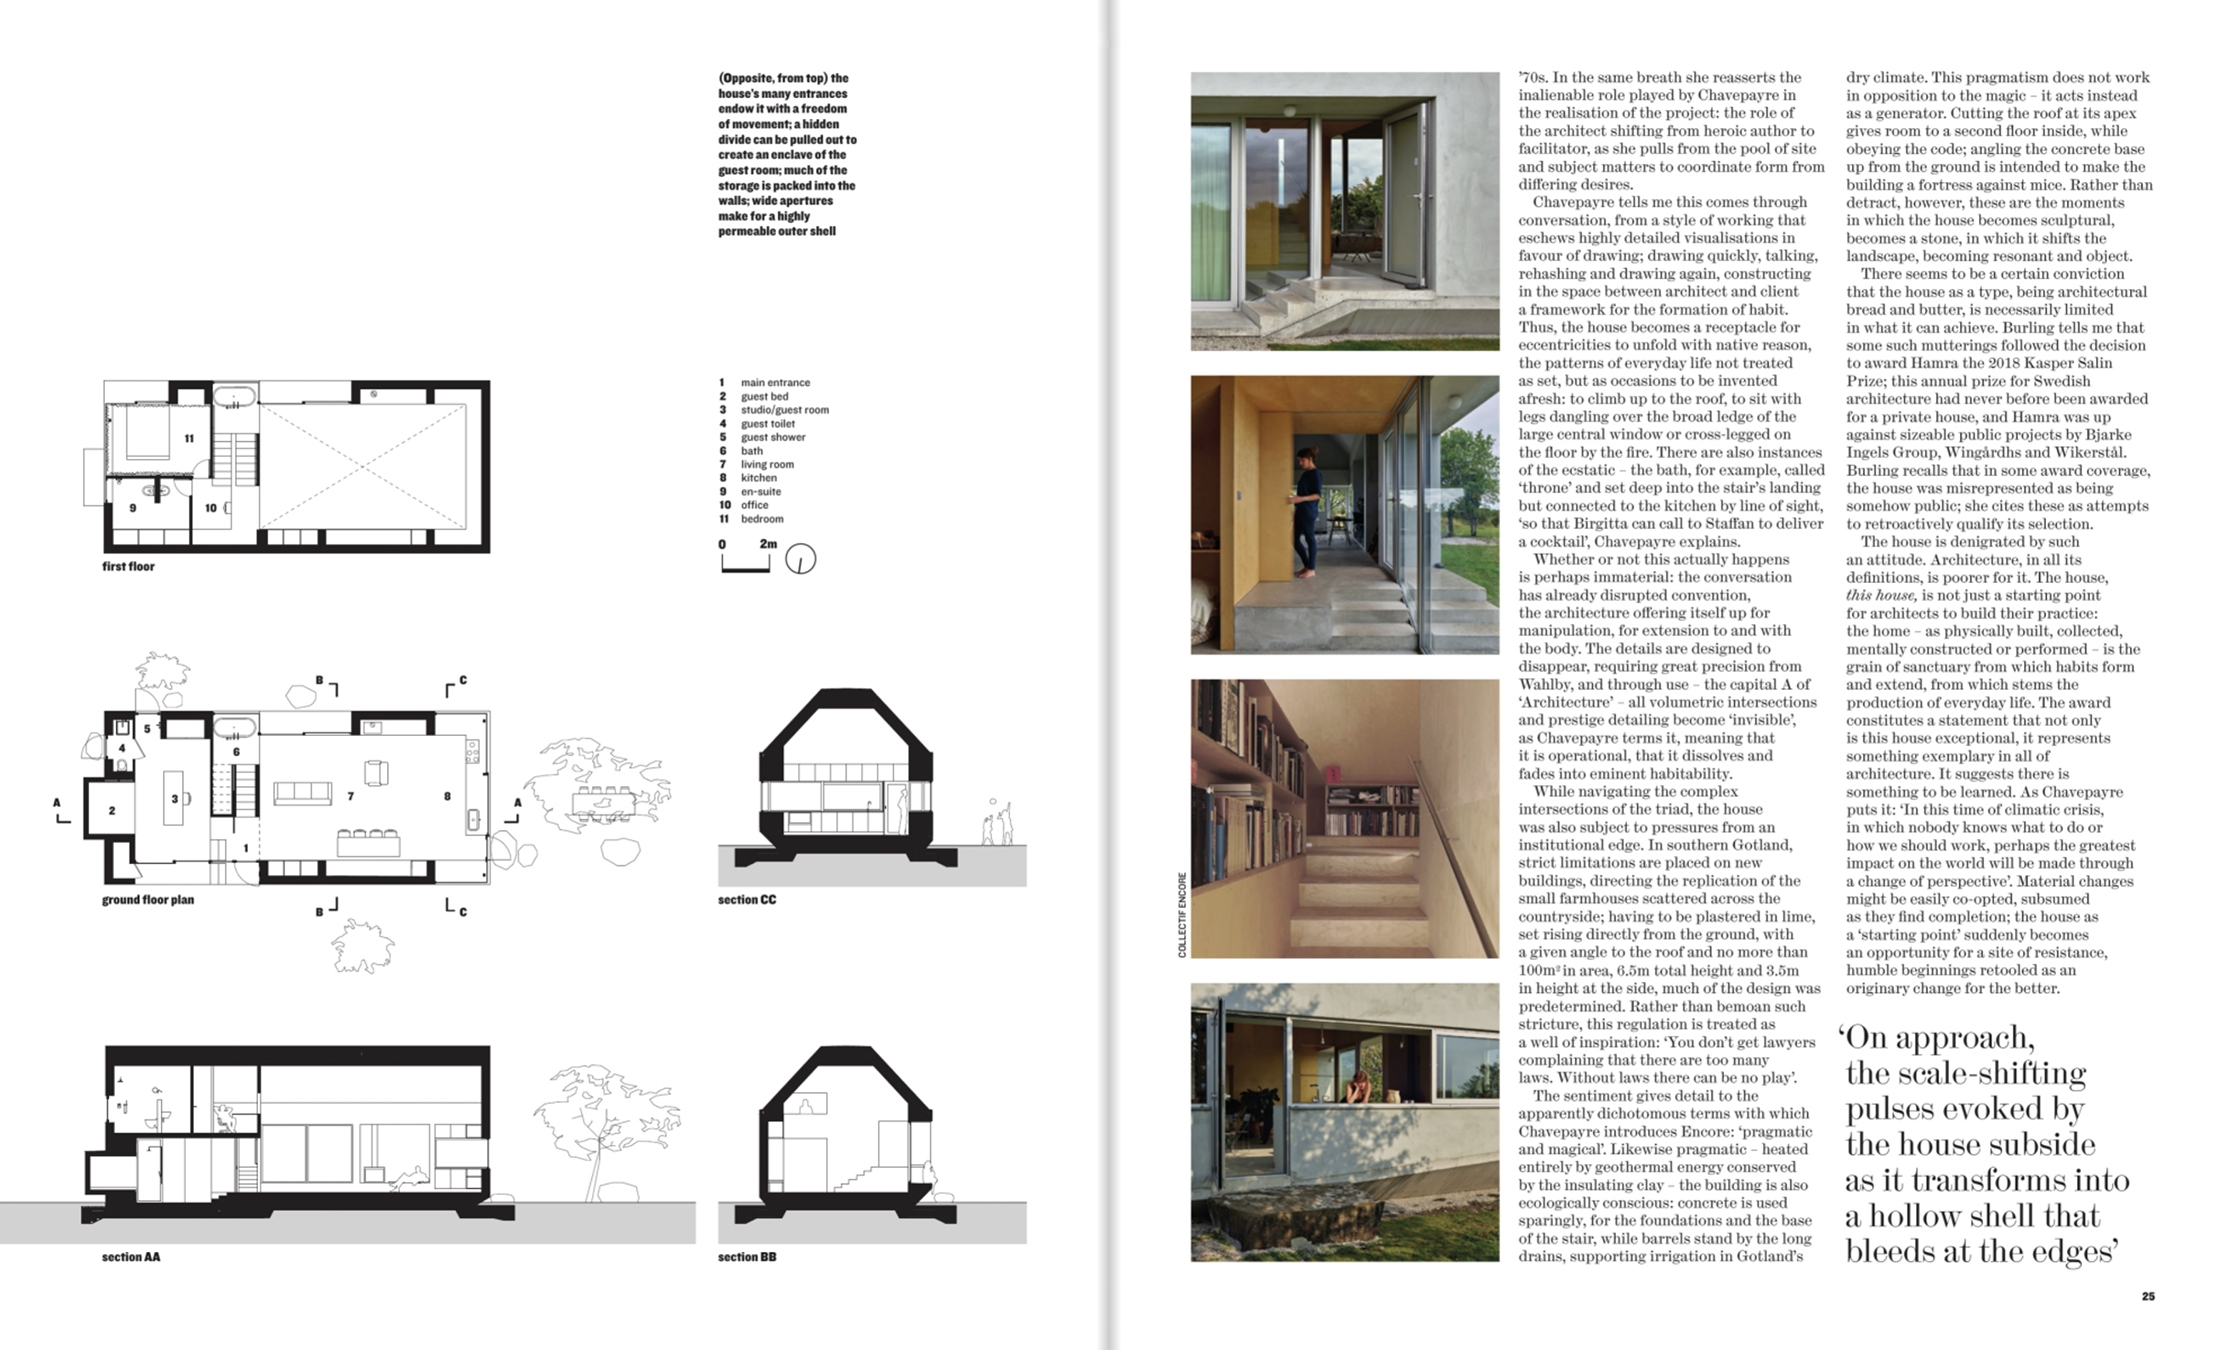 Architectural review 3